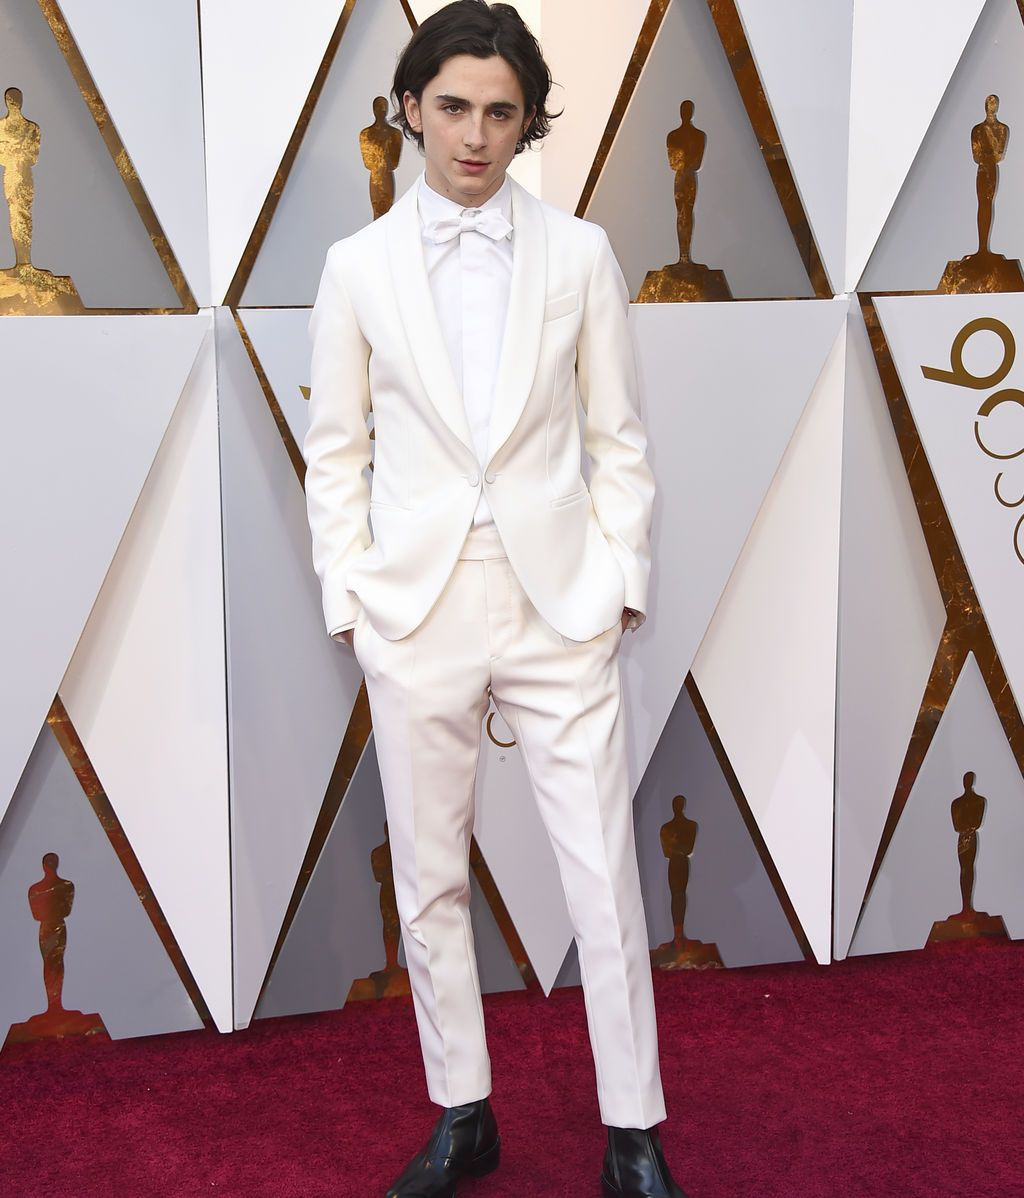 Timothee Chalamet, nominado por 'Call me by your name'